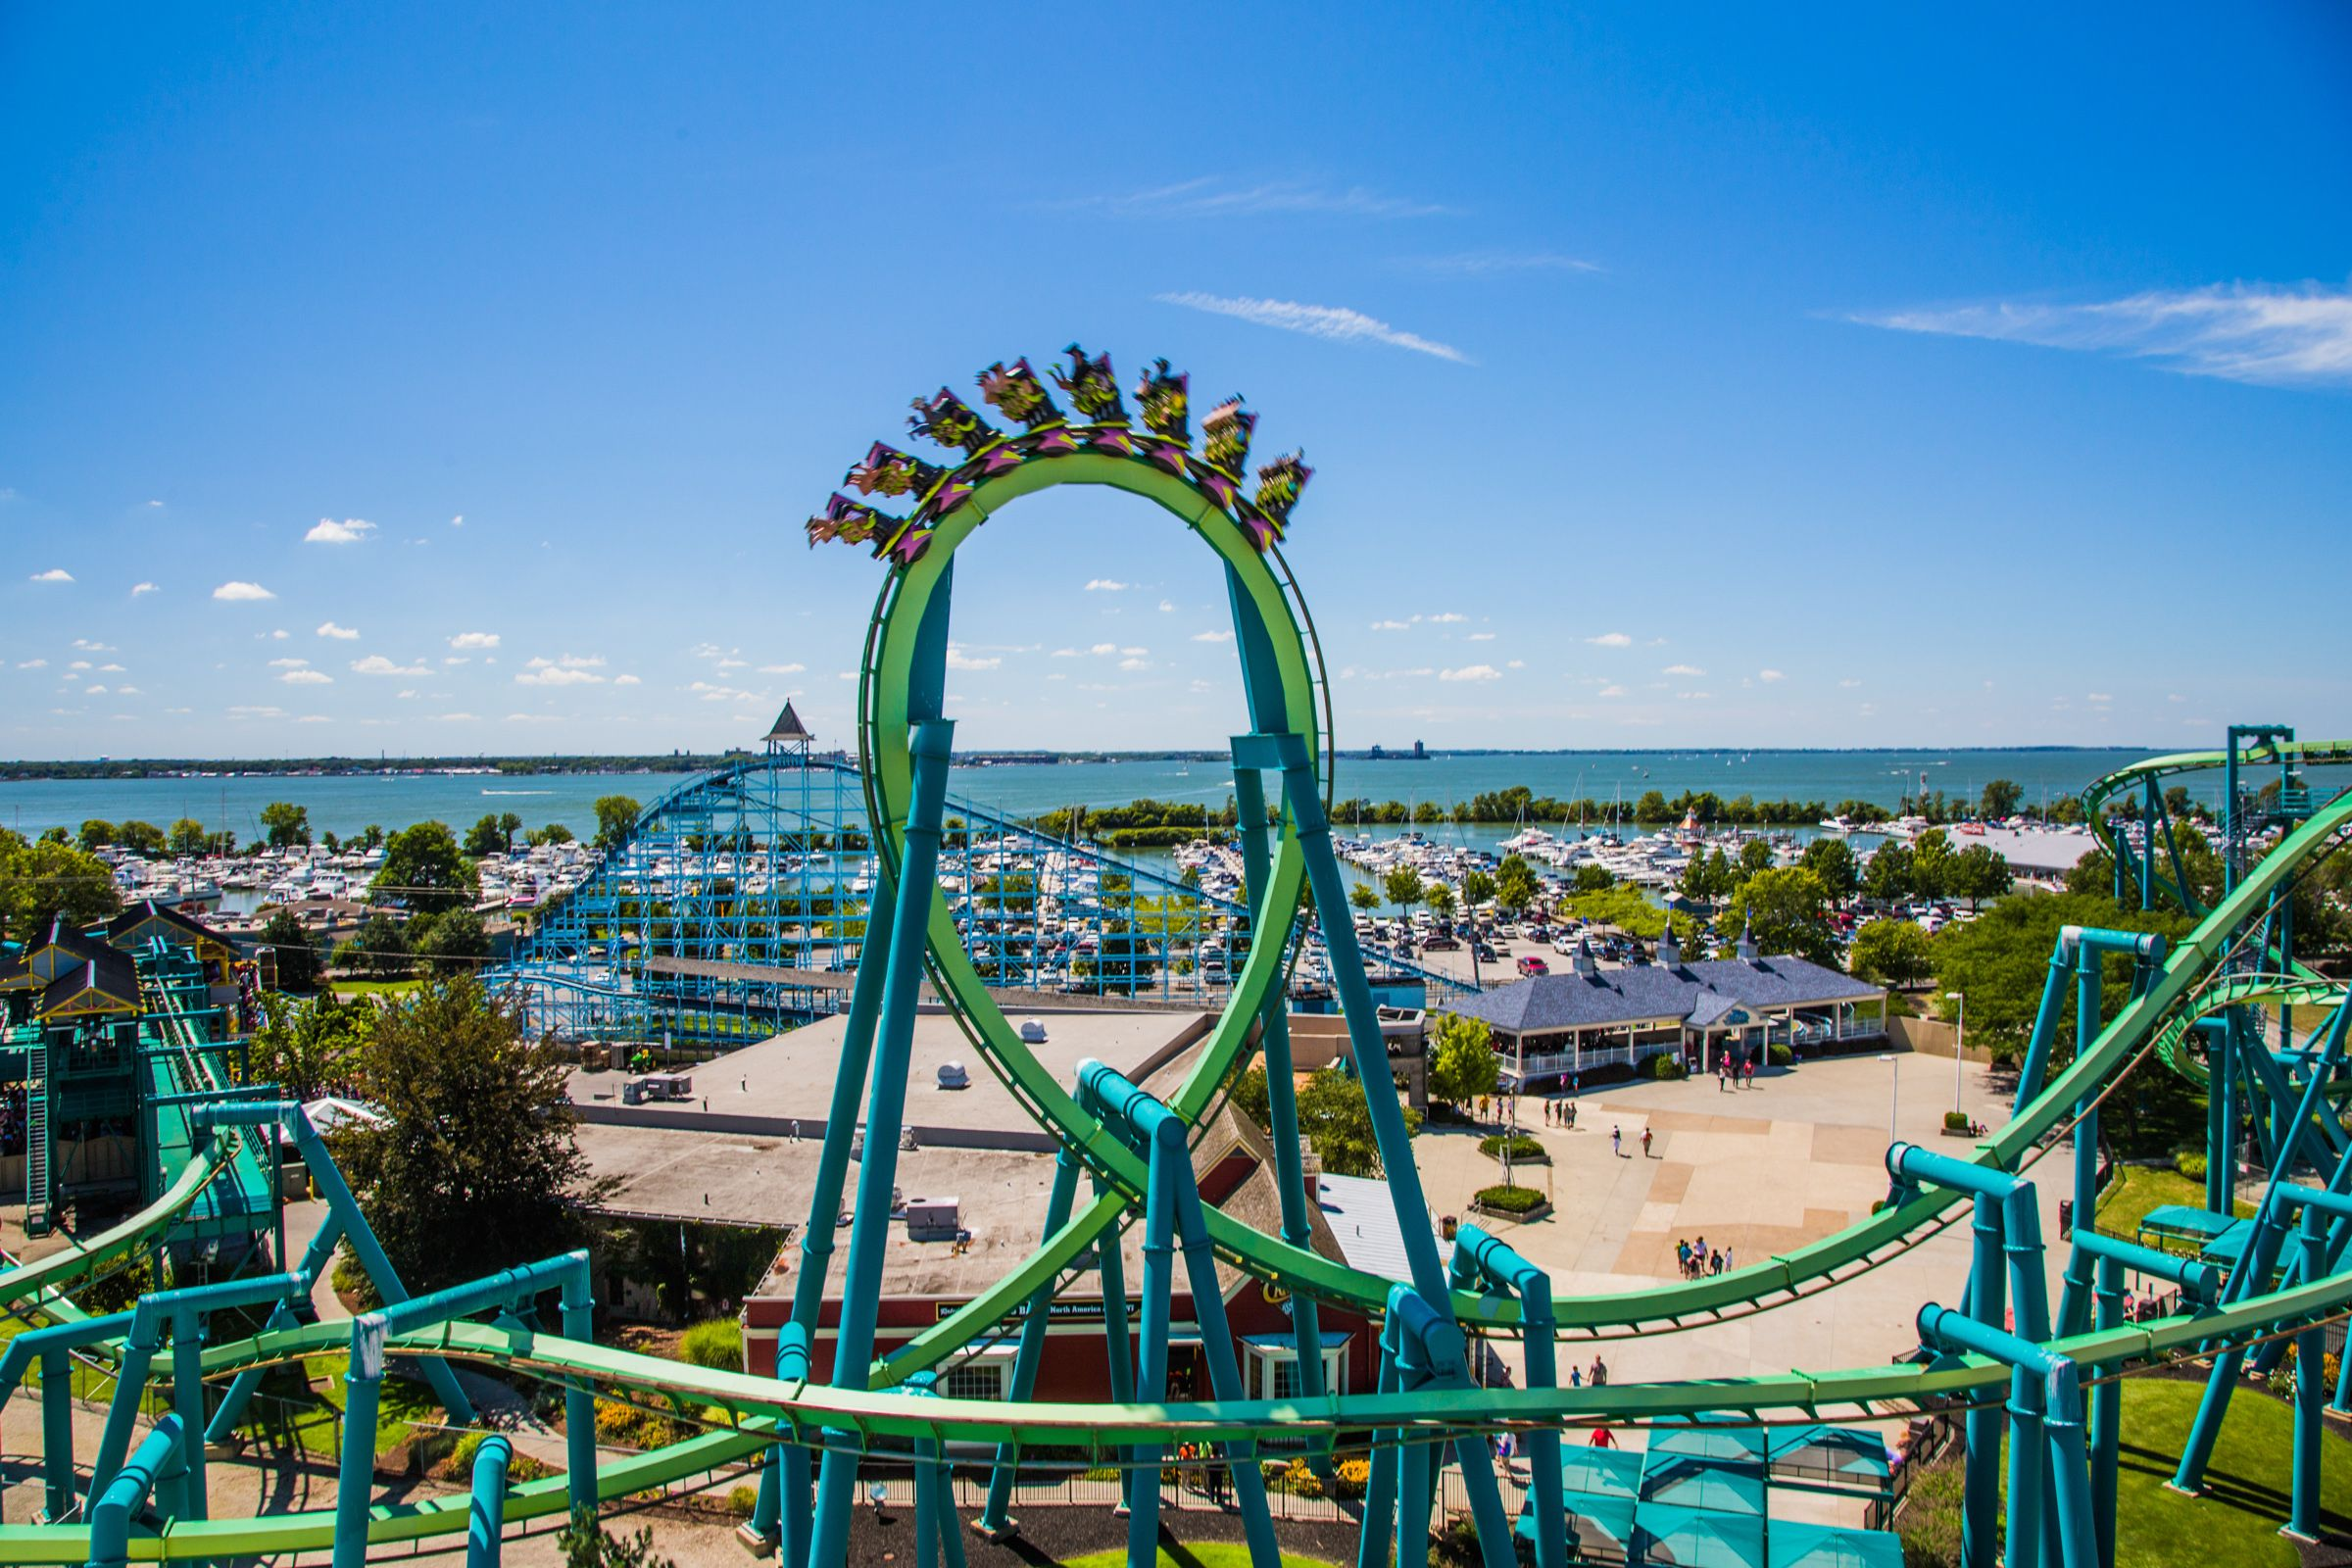 Awesome day at Cedar Point with two younger cousins. Never too old for rollercoasters. Even managed to get on a few rides with my folks. A feat which hasn't been achieved since 1996